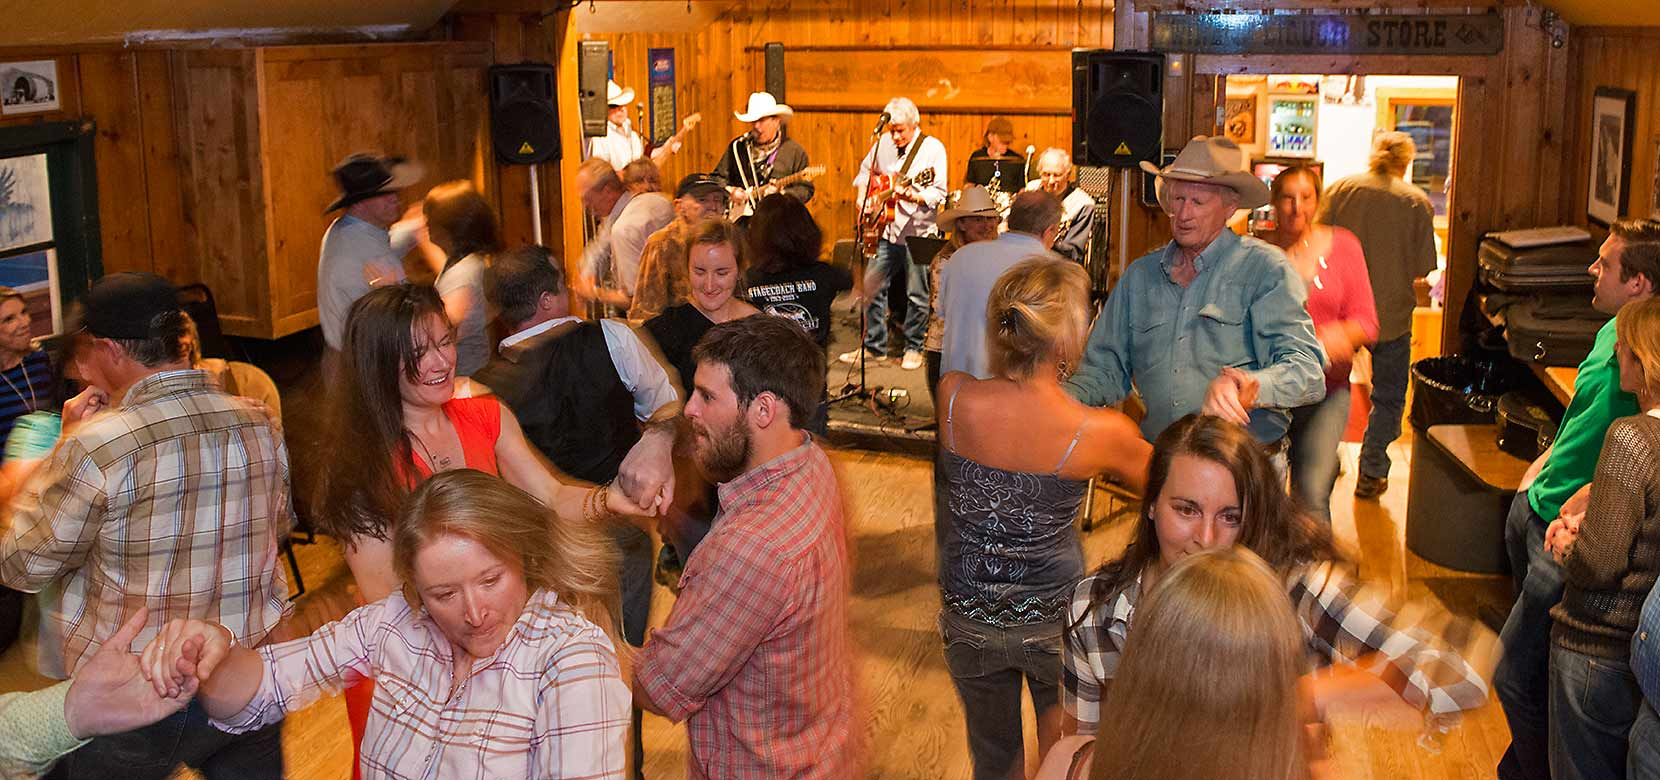 Jackson Hole Nightlife - Stagecoach Bar